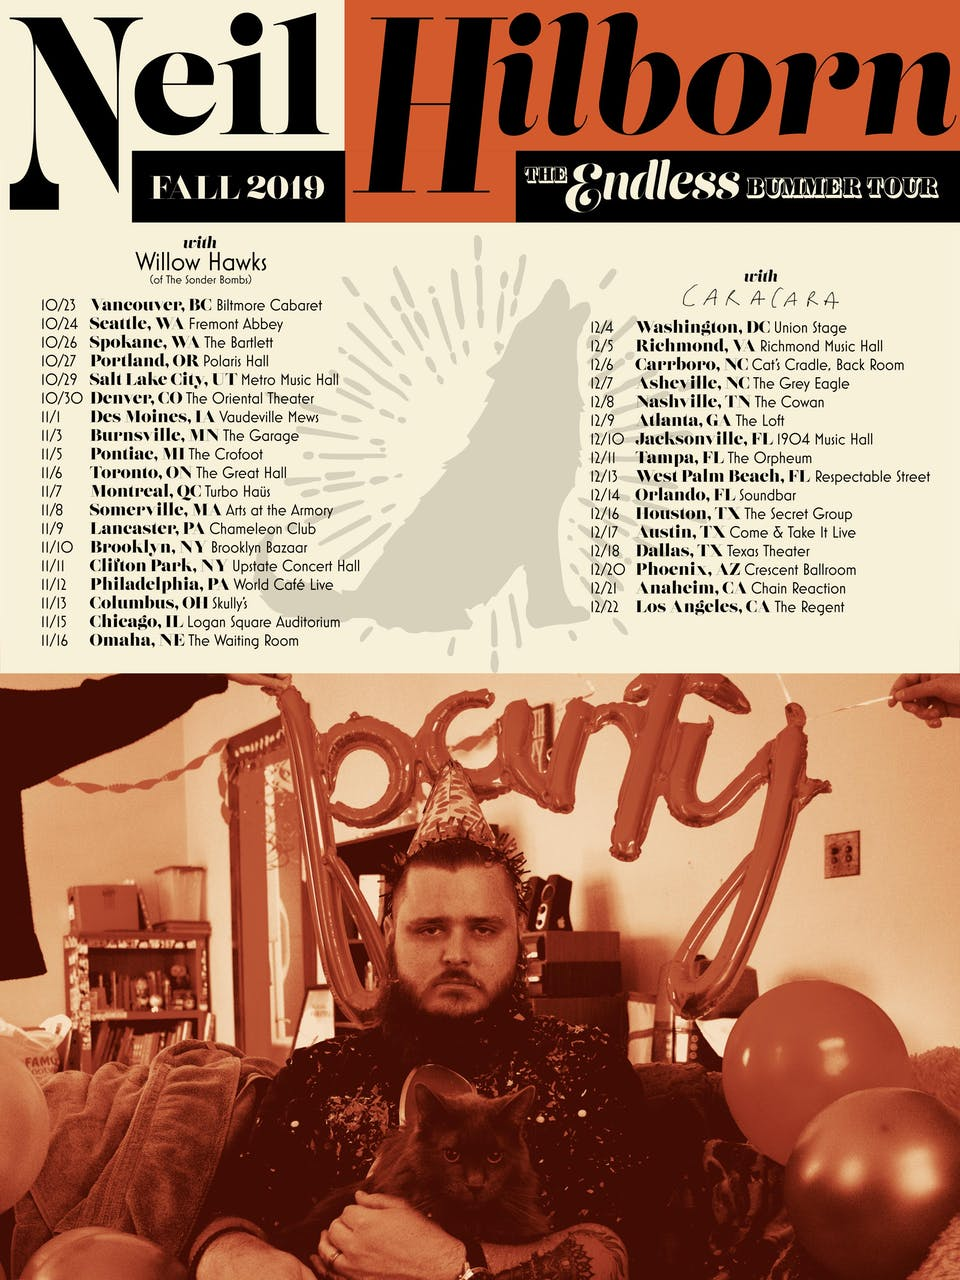 The Endless Bummer Tour featuring Neil Hilborn